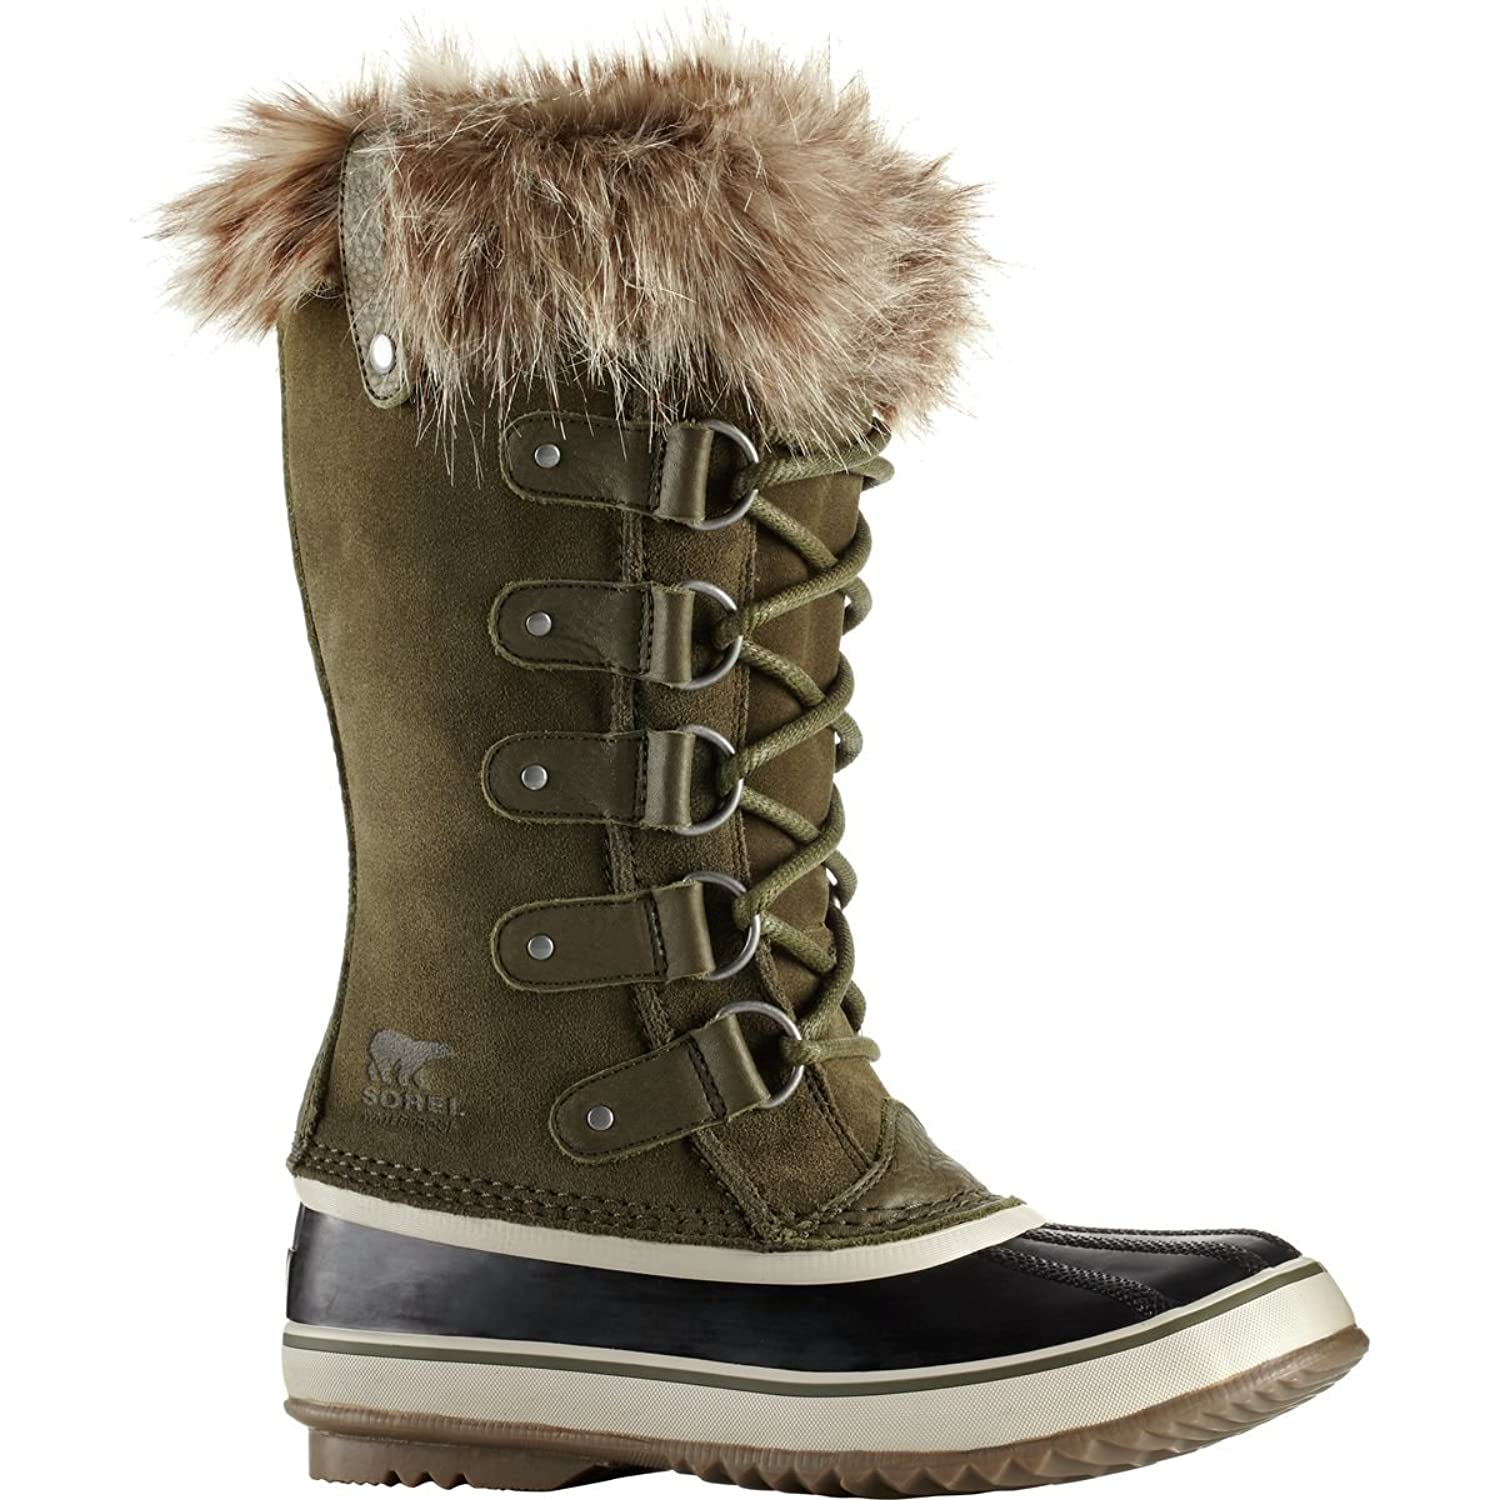 strategist shoes most article women kamik s boot the waterproof comforter womens comfortable for rain and best boots heidi